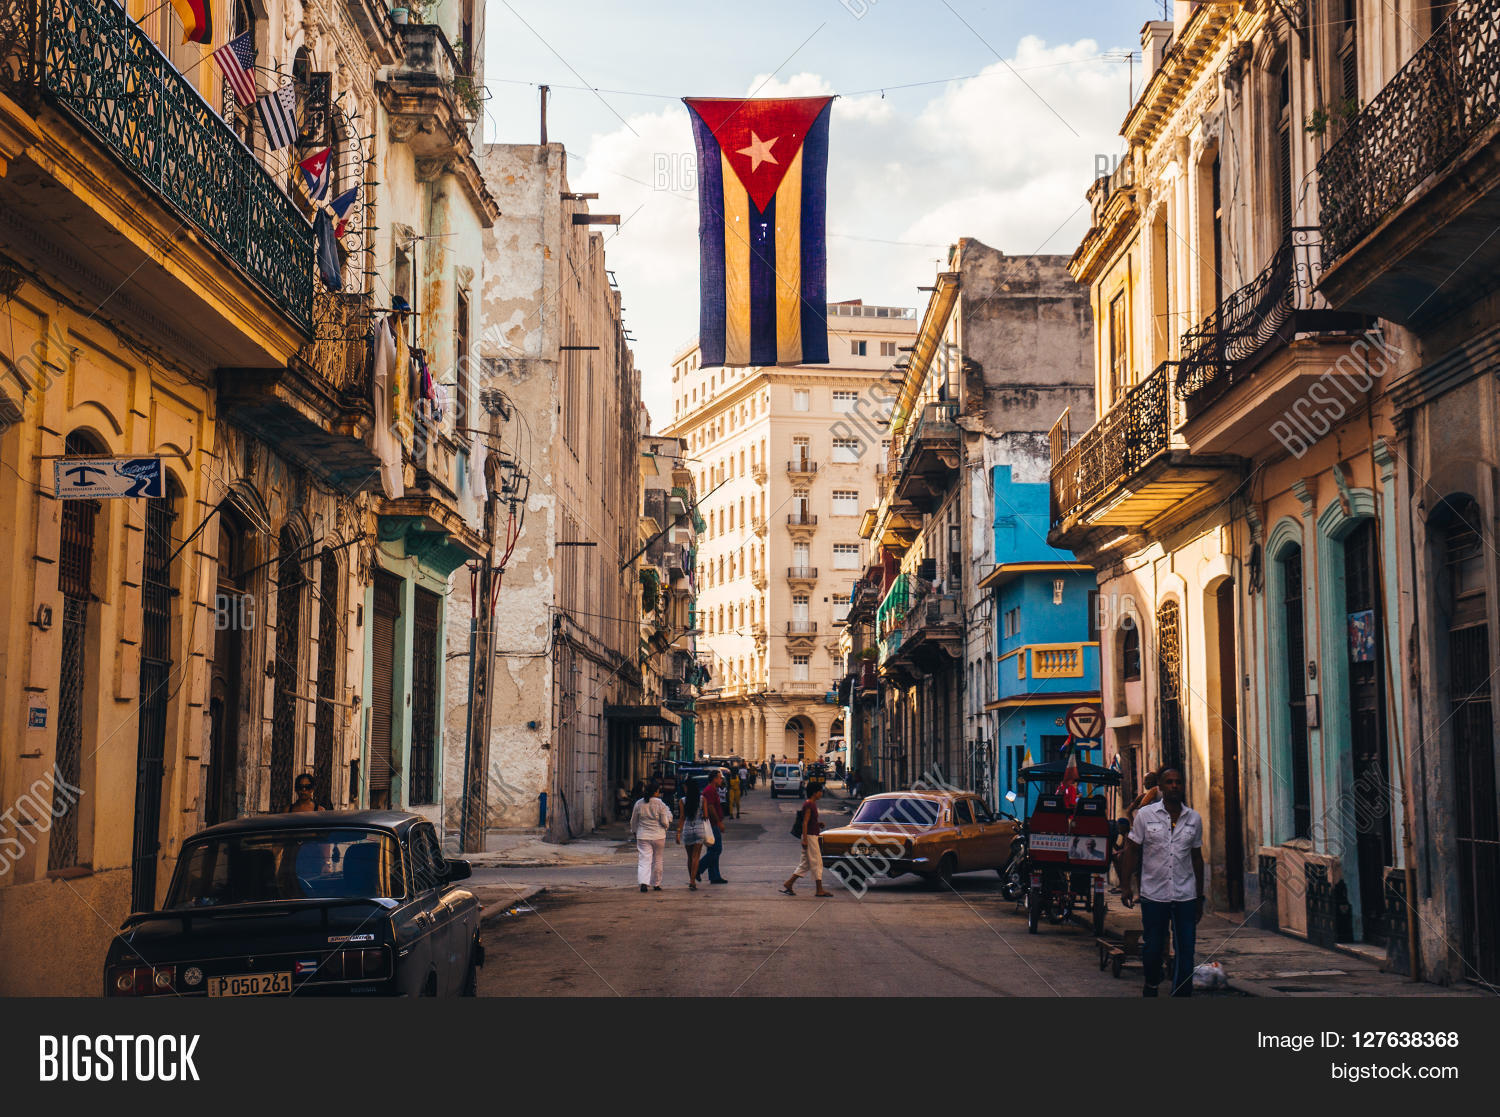 the history and economy of havana cuba Cuba has a planned economy dominated by state-run enterprises most industries are owned and operated by the government and most of the labor force is employed by the state.